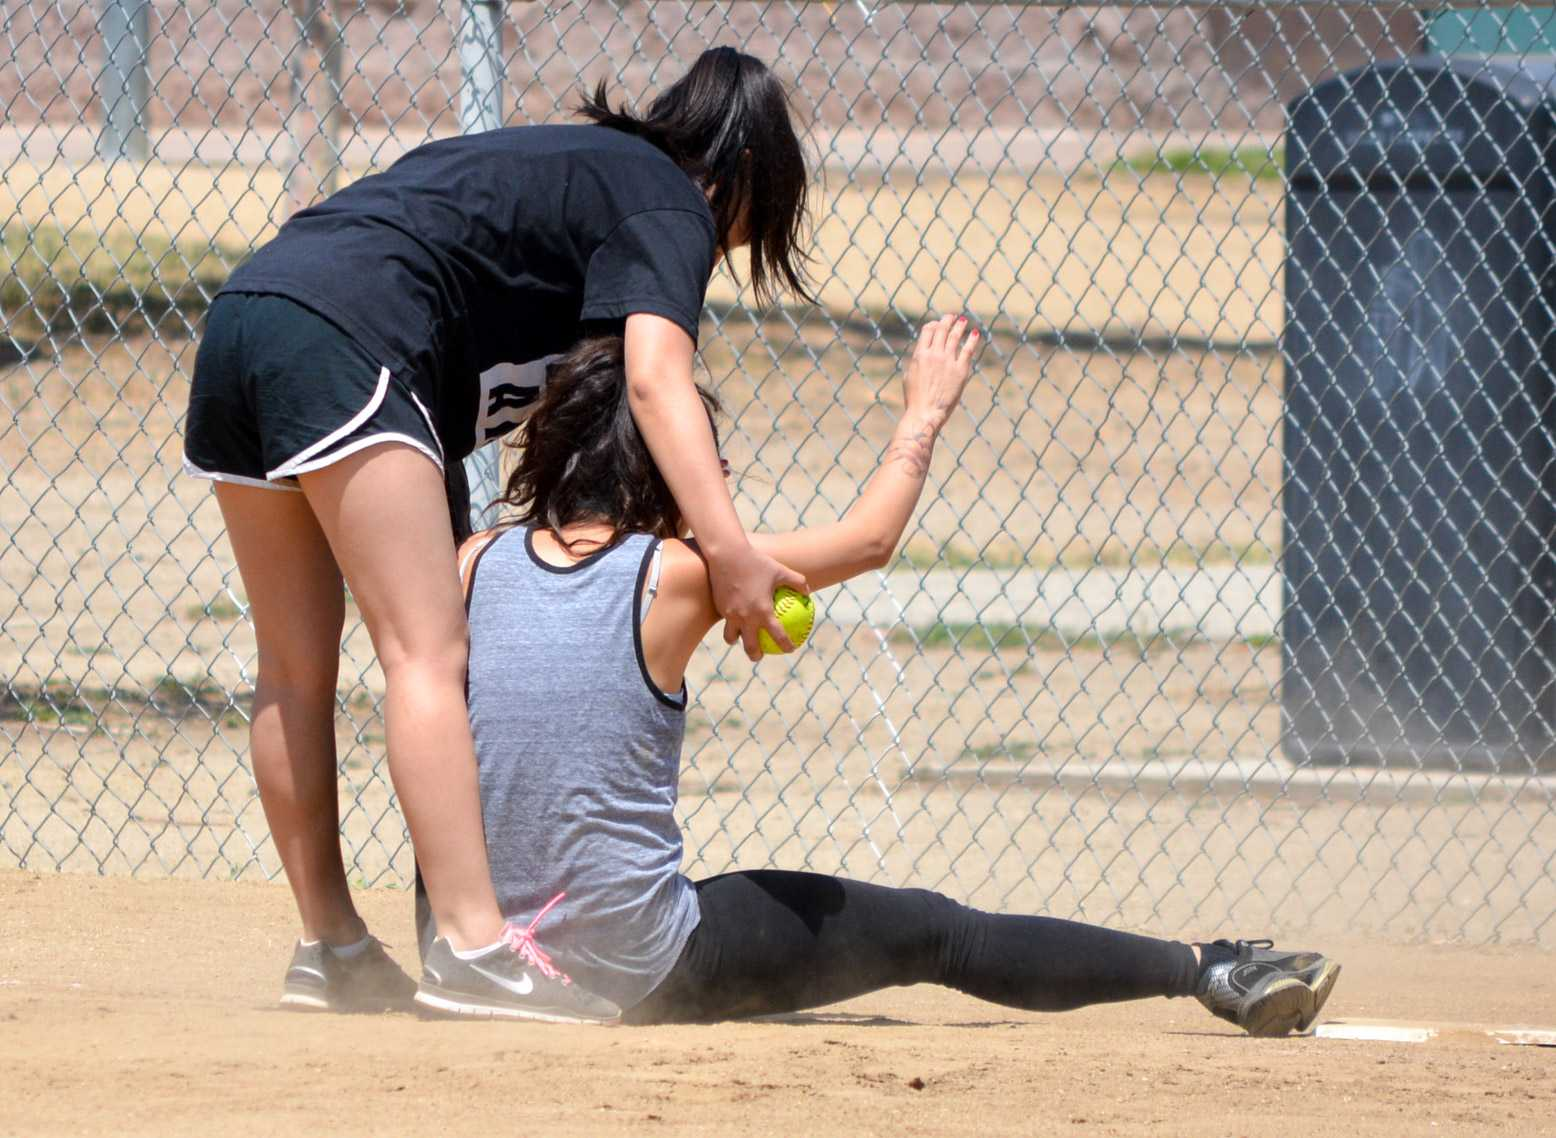 Jessica Kwack helps Tiffany Chen up after Chen slid to the base